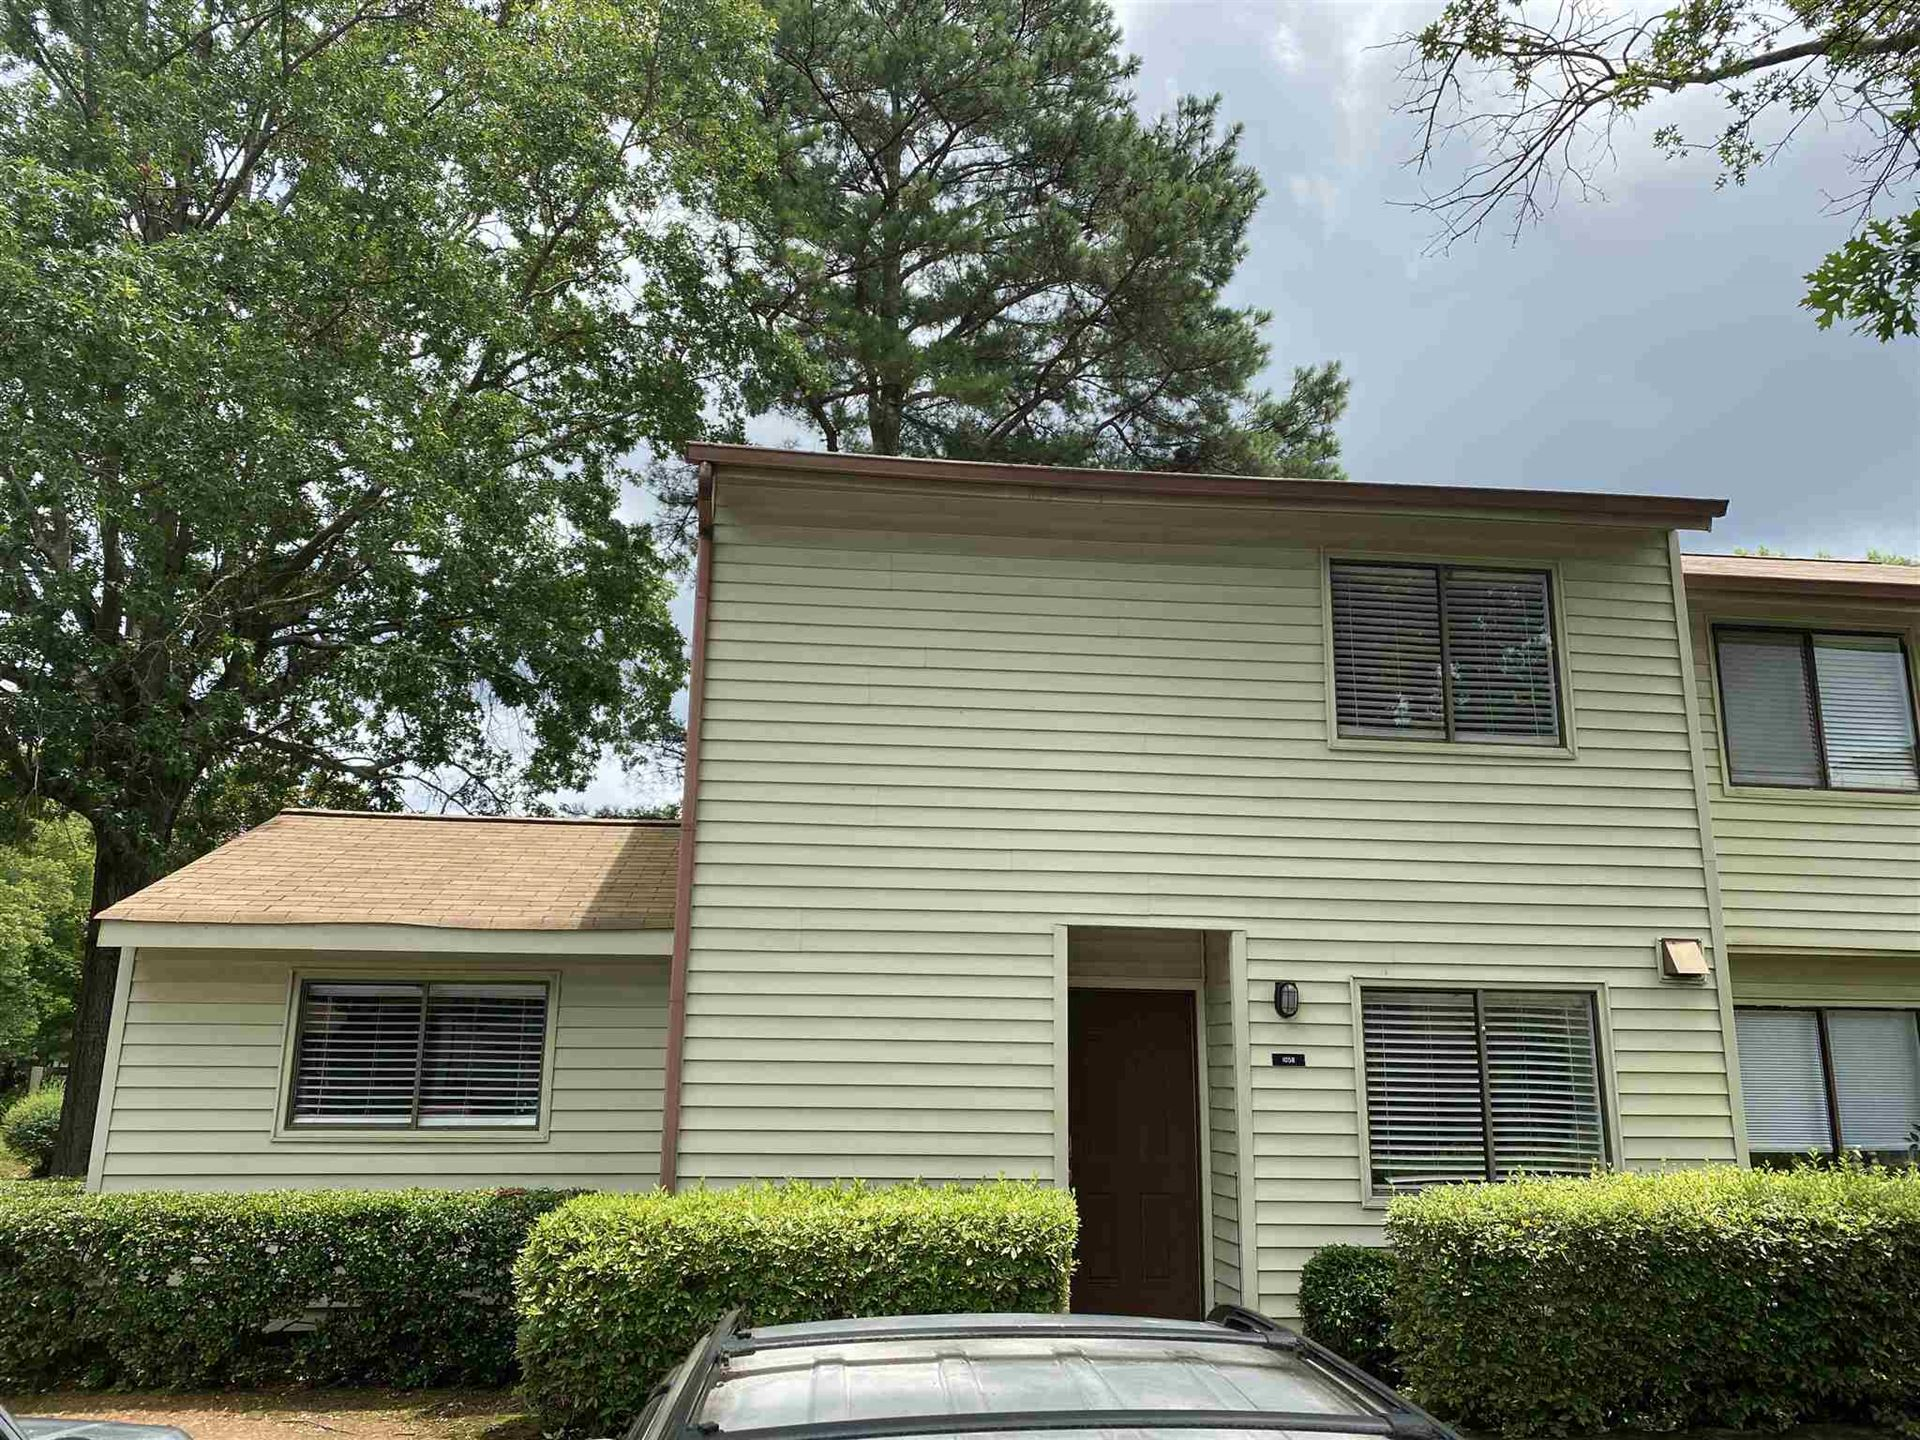 1058 Country Ct, Lawrenceville, GA 30044 - #: 8808869